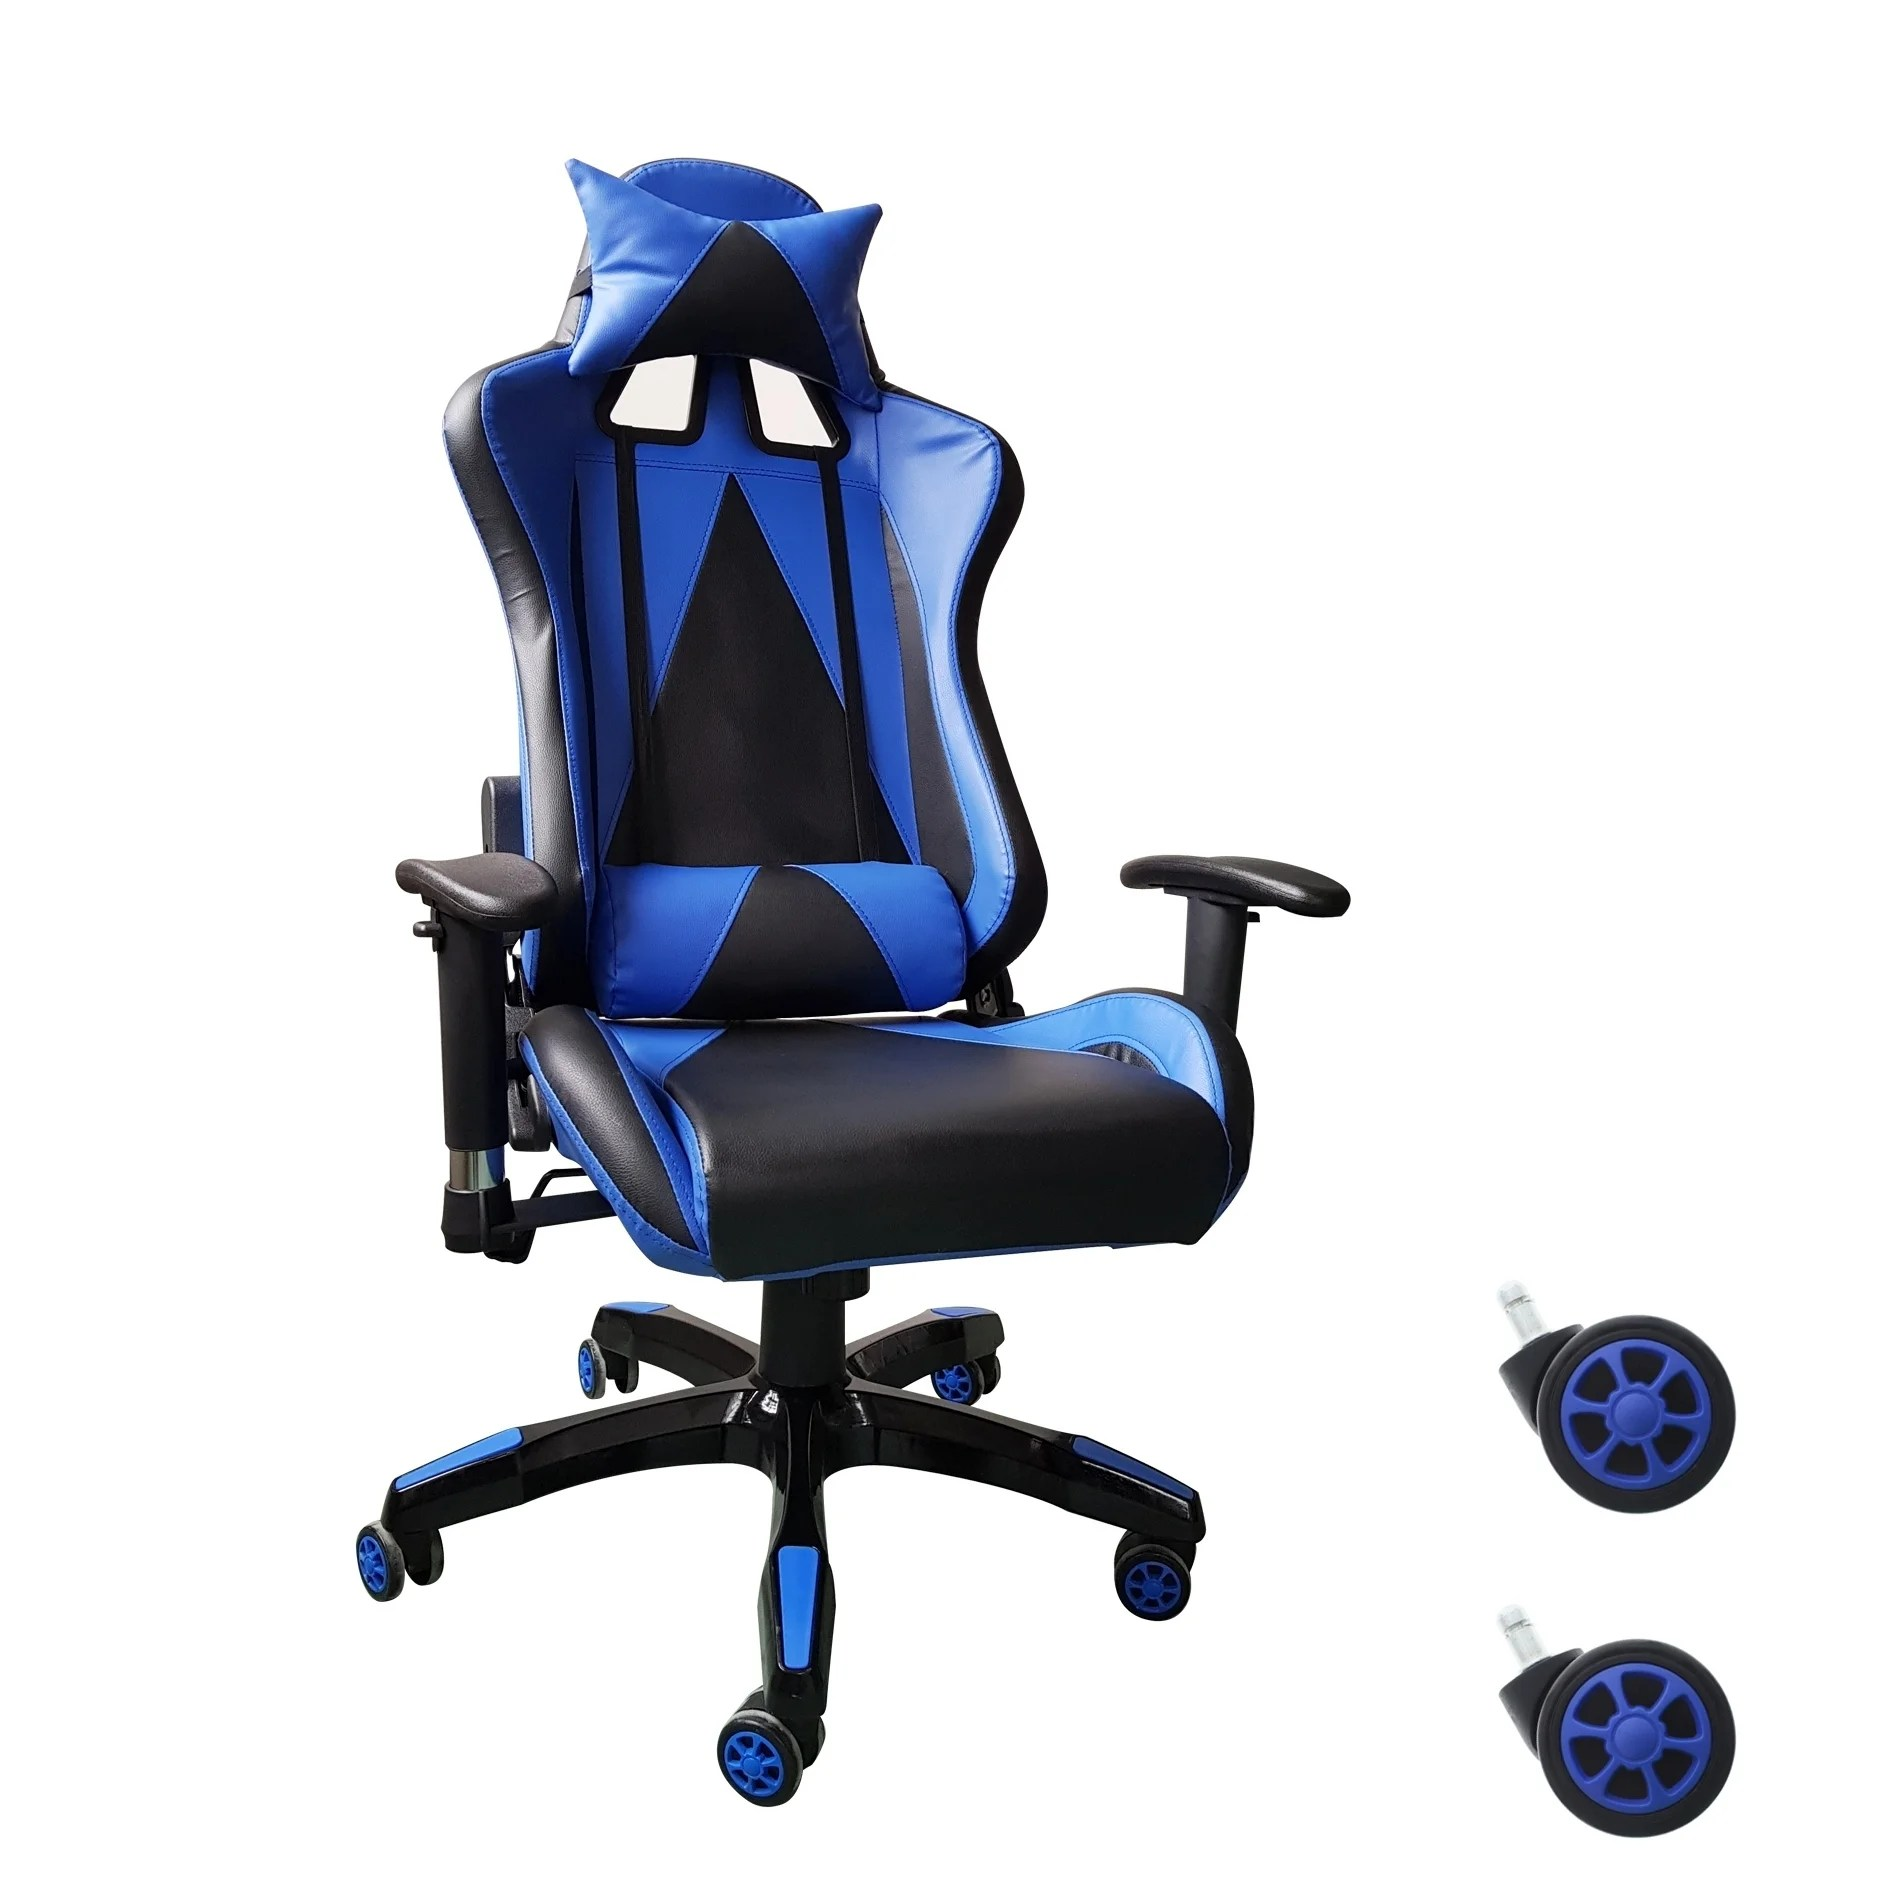 Video Chair Video Gaming Chair Executive Swivel Racing Style High Back Office Chair Lumbar Support Ergonomic With Headrest Blue